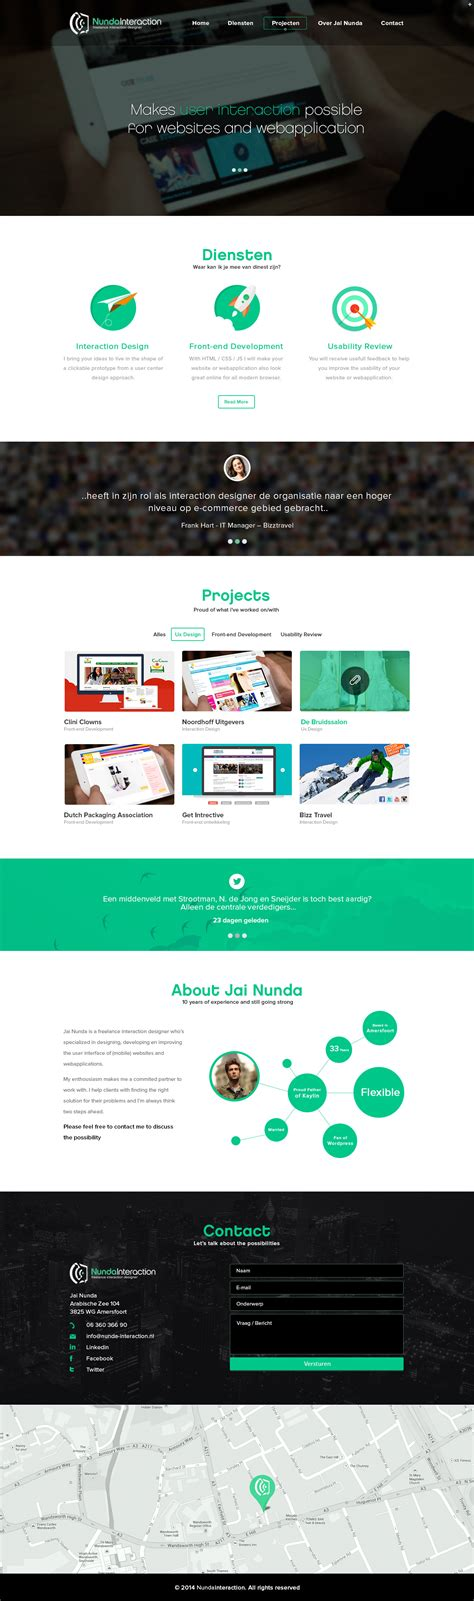 design one iconic graphics n interaction one page website design